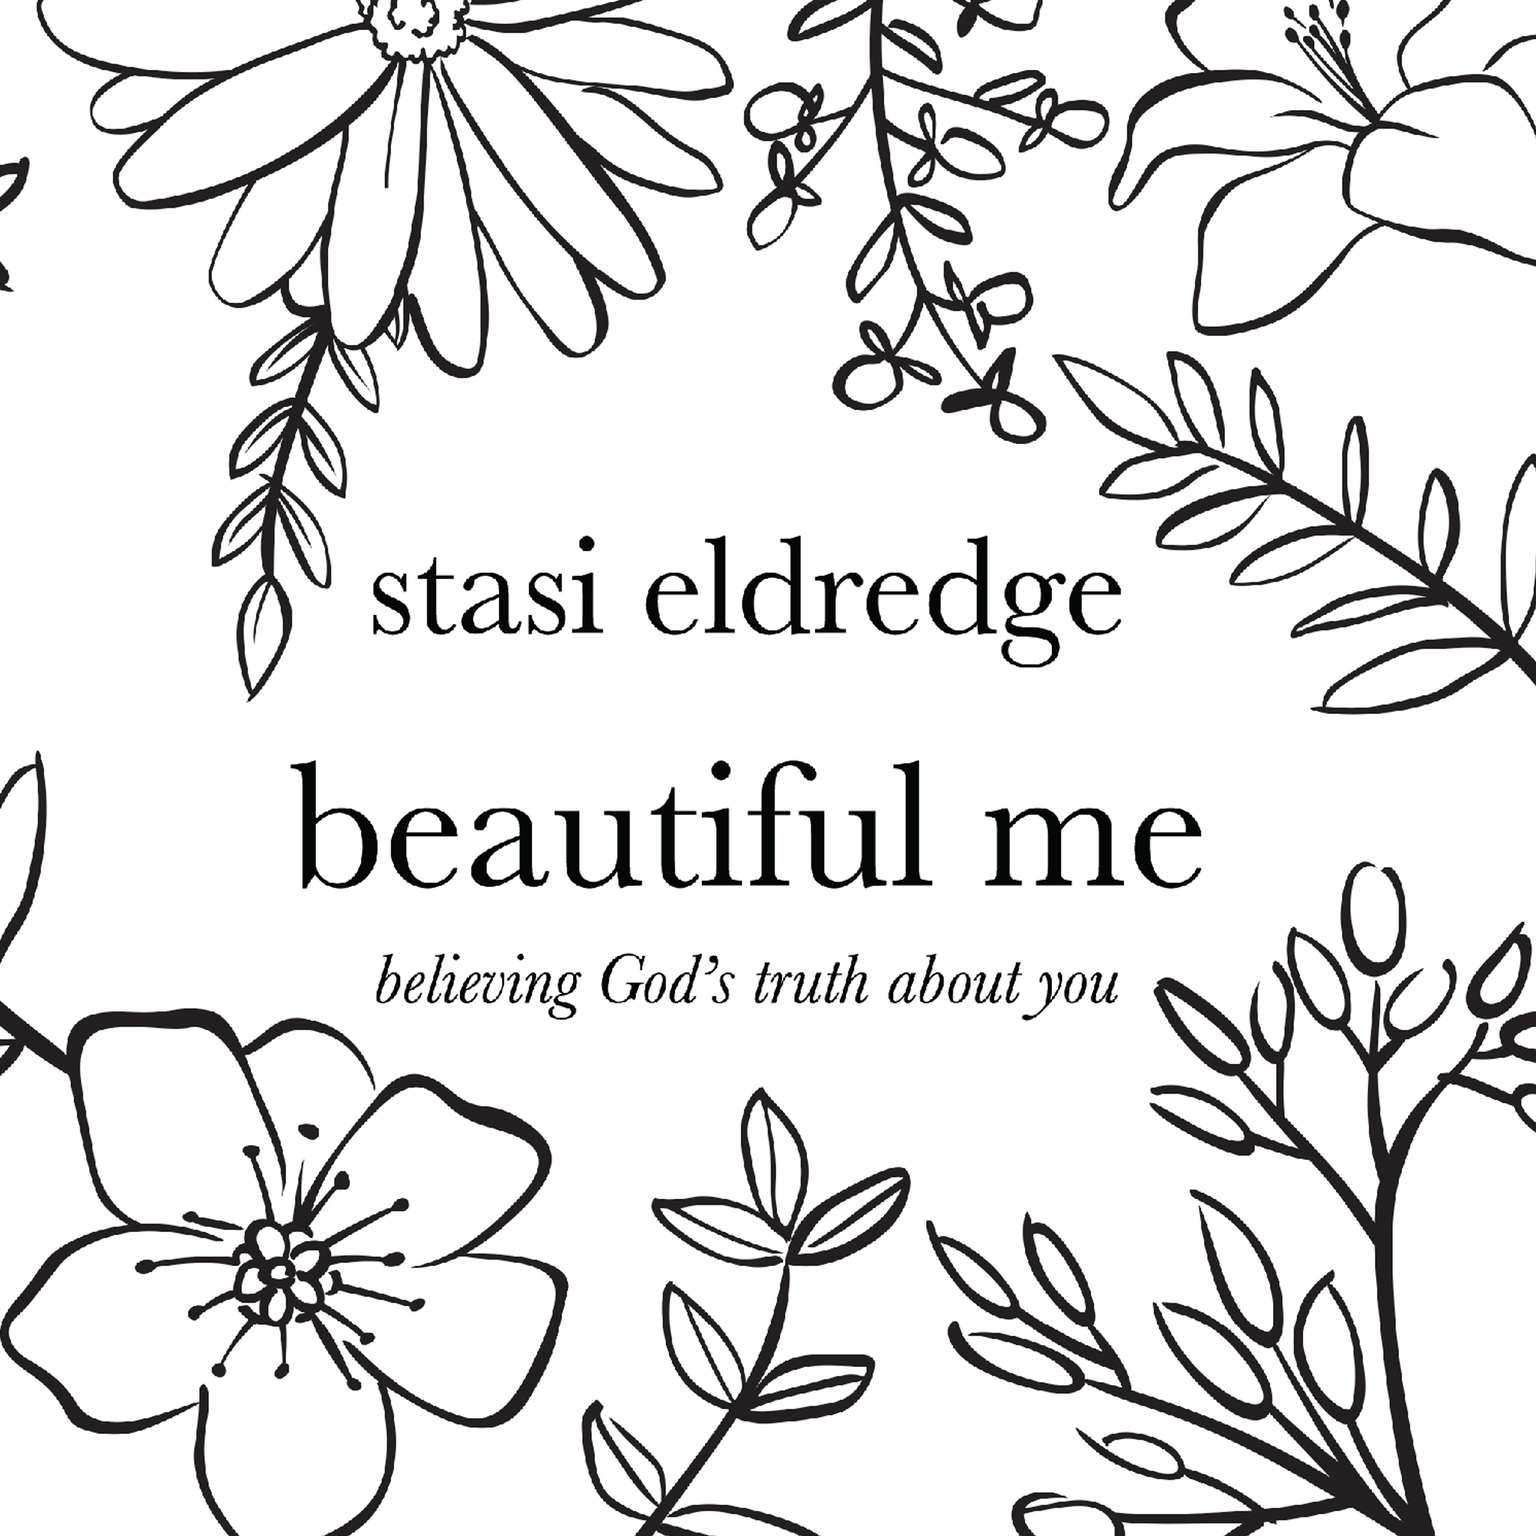 Beautiful Me: Believing Gods Truth About You Audiobook, by Stasi Eldredge